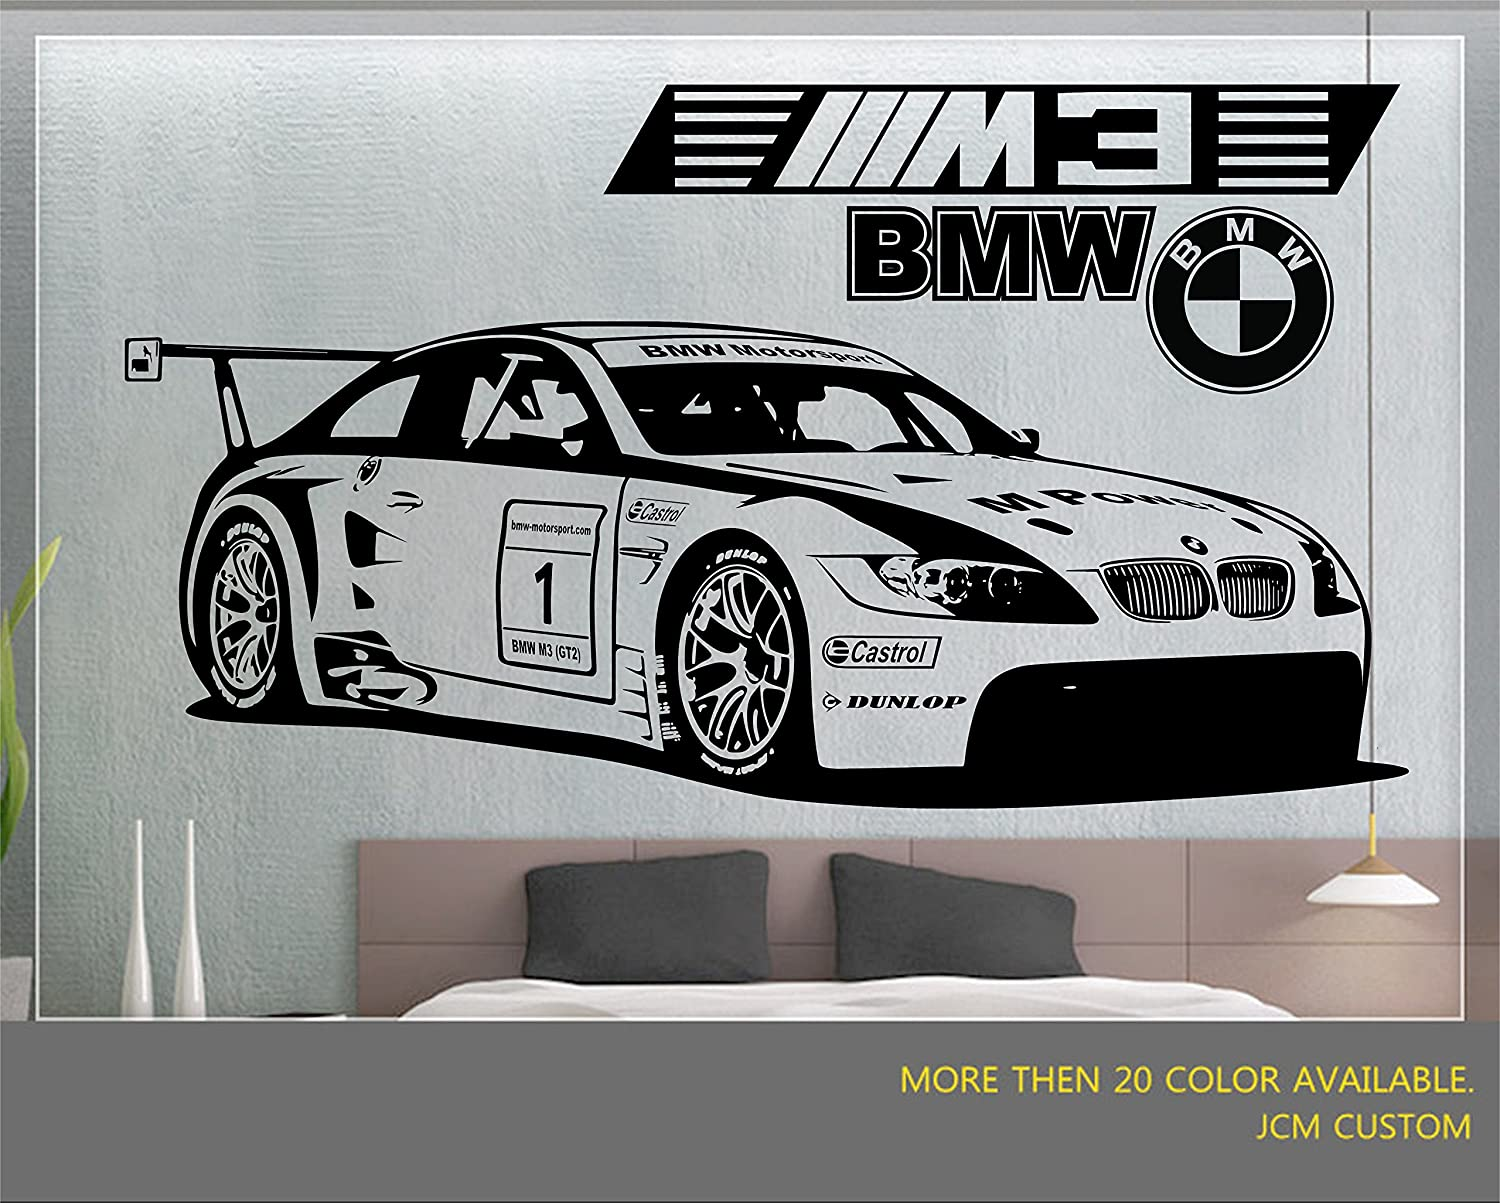 Jcm custom m3 gt2 m power race car removable wall vinyl decal stickers 58 x 22 amazon com